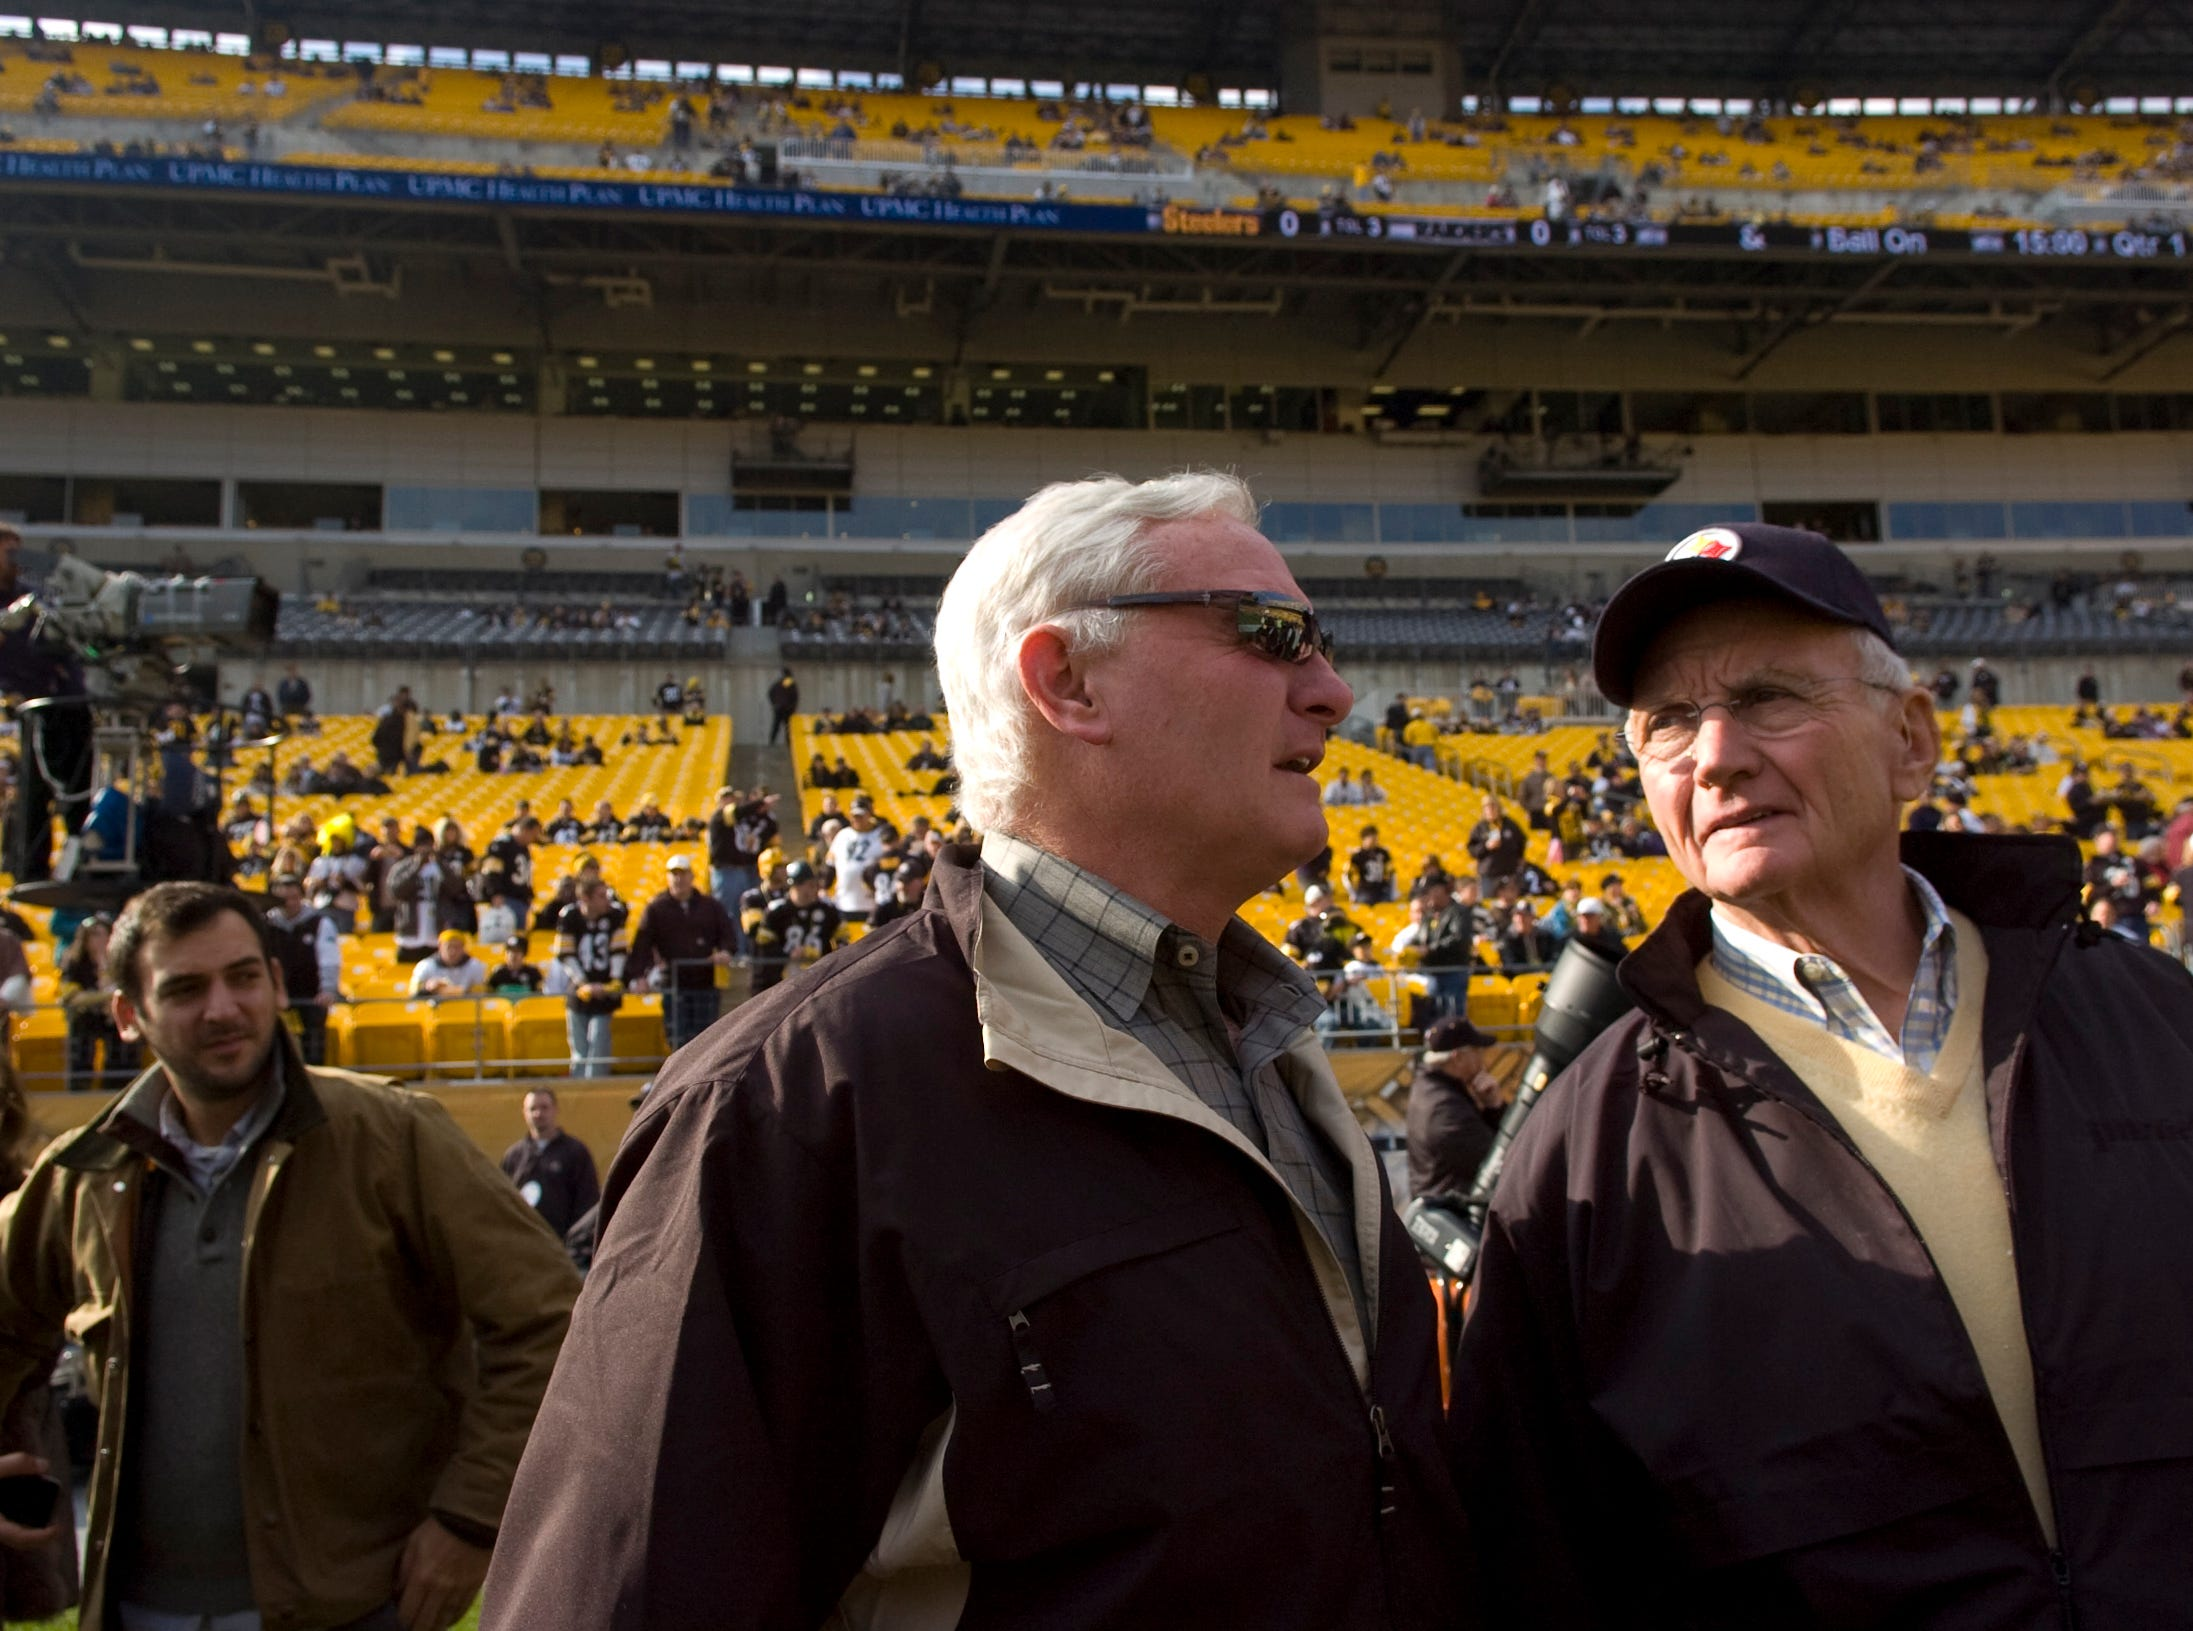 Jimmy, left,  and Jim Haslam talk before the Pittsburgh Steelers and the Oakland Raiders game Nov. 21, 2010 in Pittsburgh, Penn. Jimmy Haslam became a partner in the Pittsburgh Steelers in 2008.